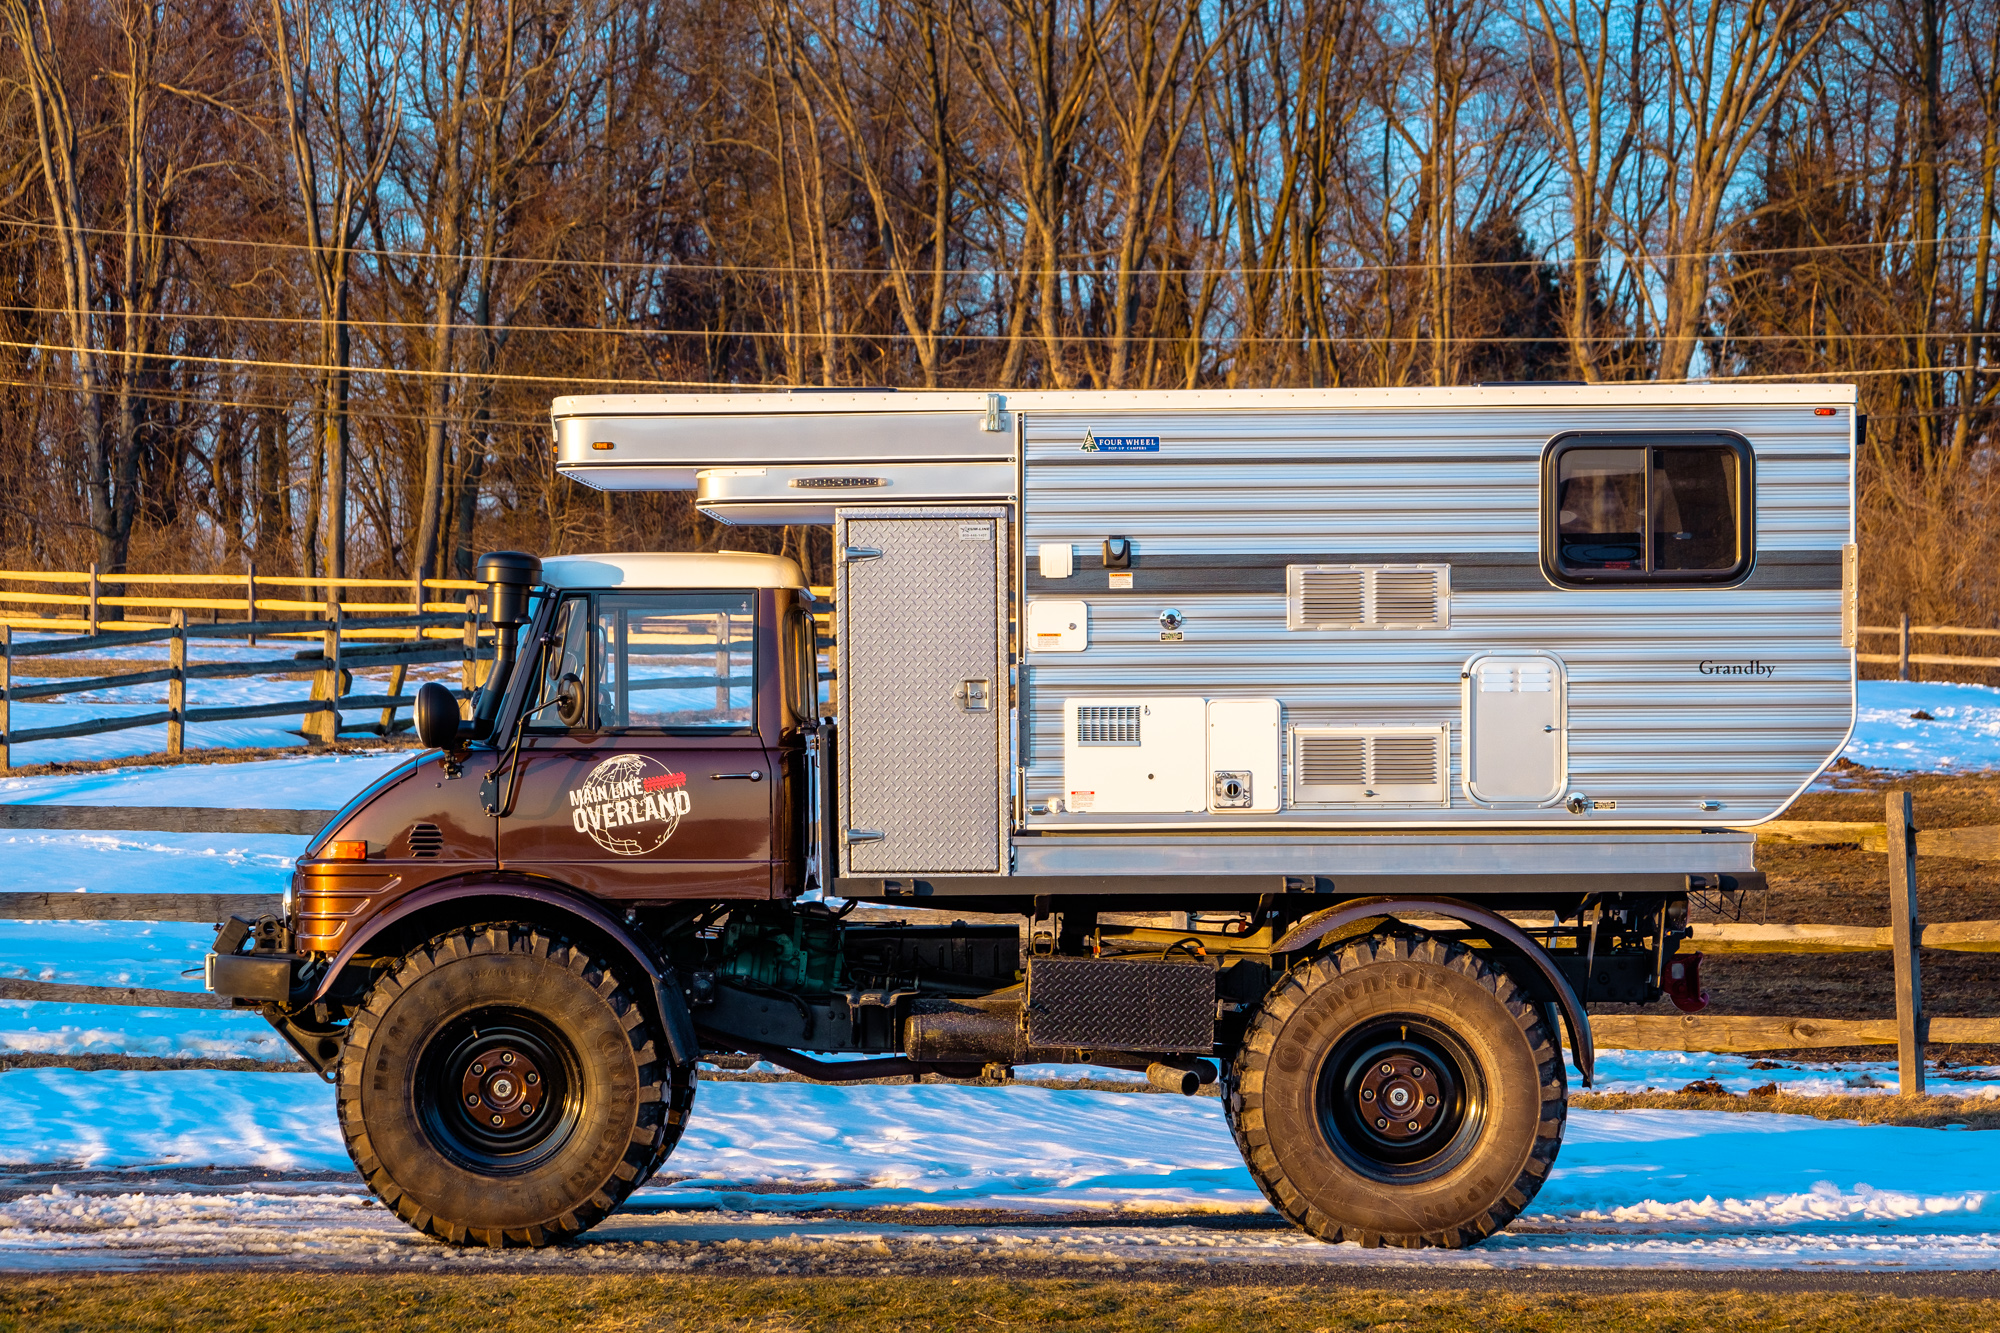 A side view of the Unimog Off Road Mercedes with a Four Wheel Campers Grandby camping pod mounted to the back.